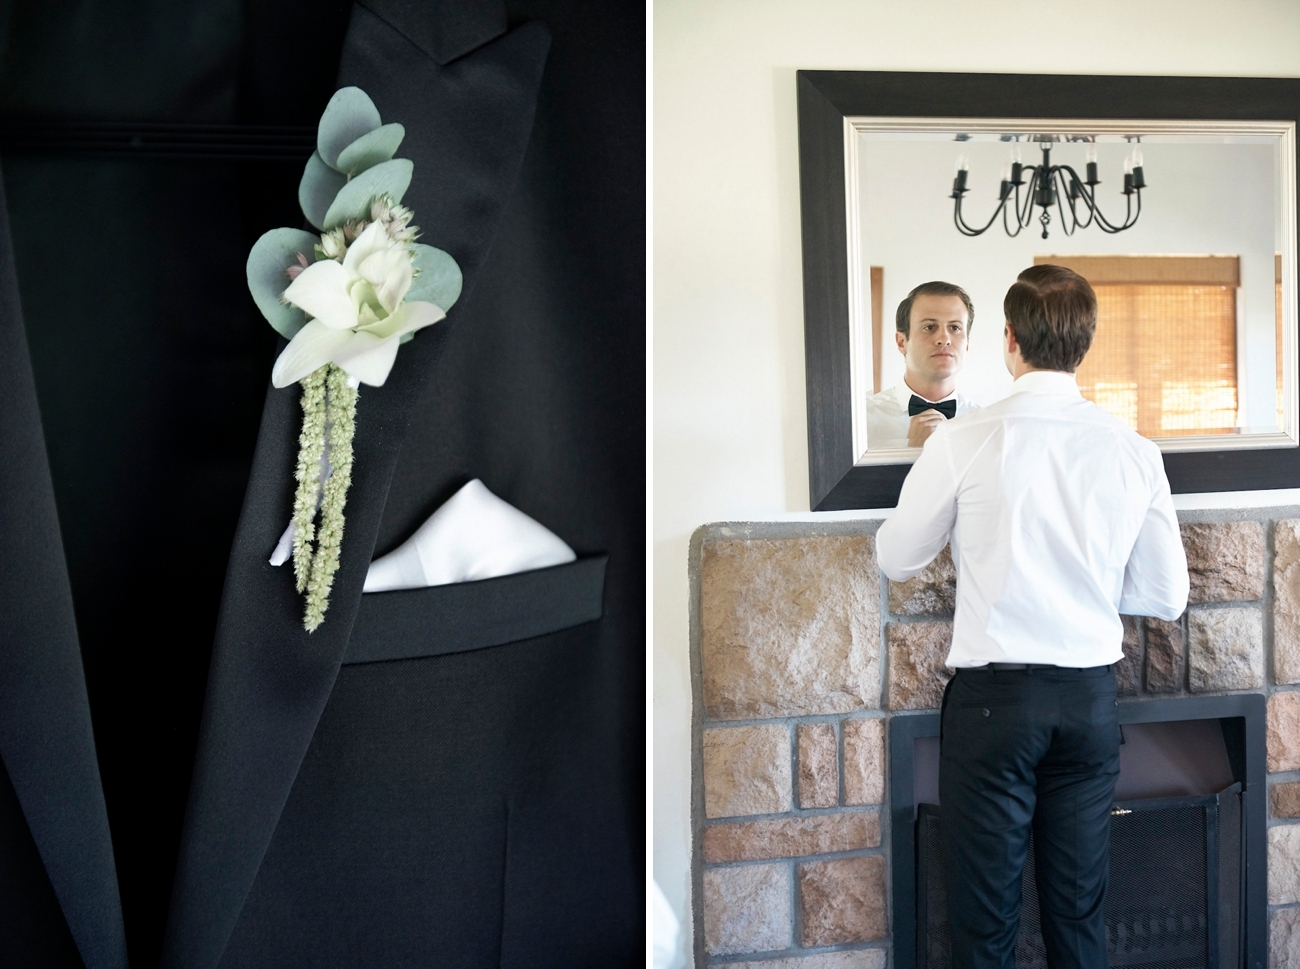 Green Boutonniere   Image: Knit Together Photography